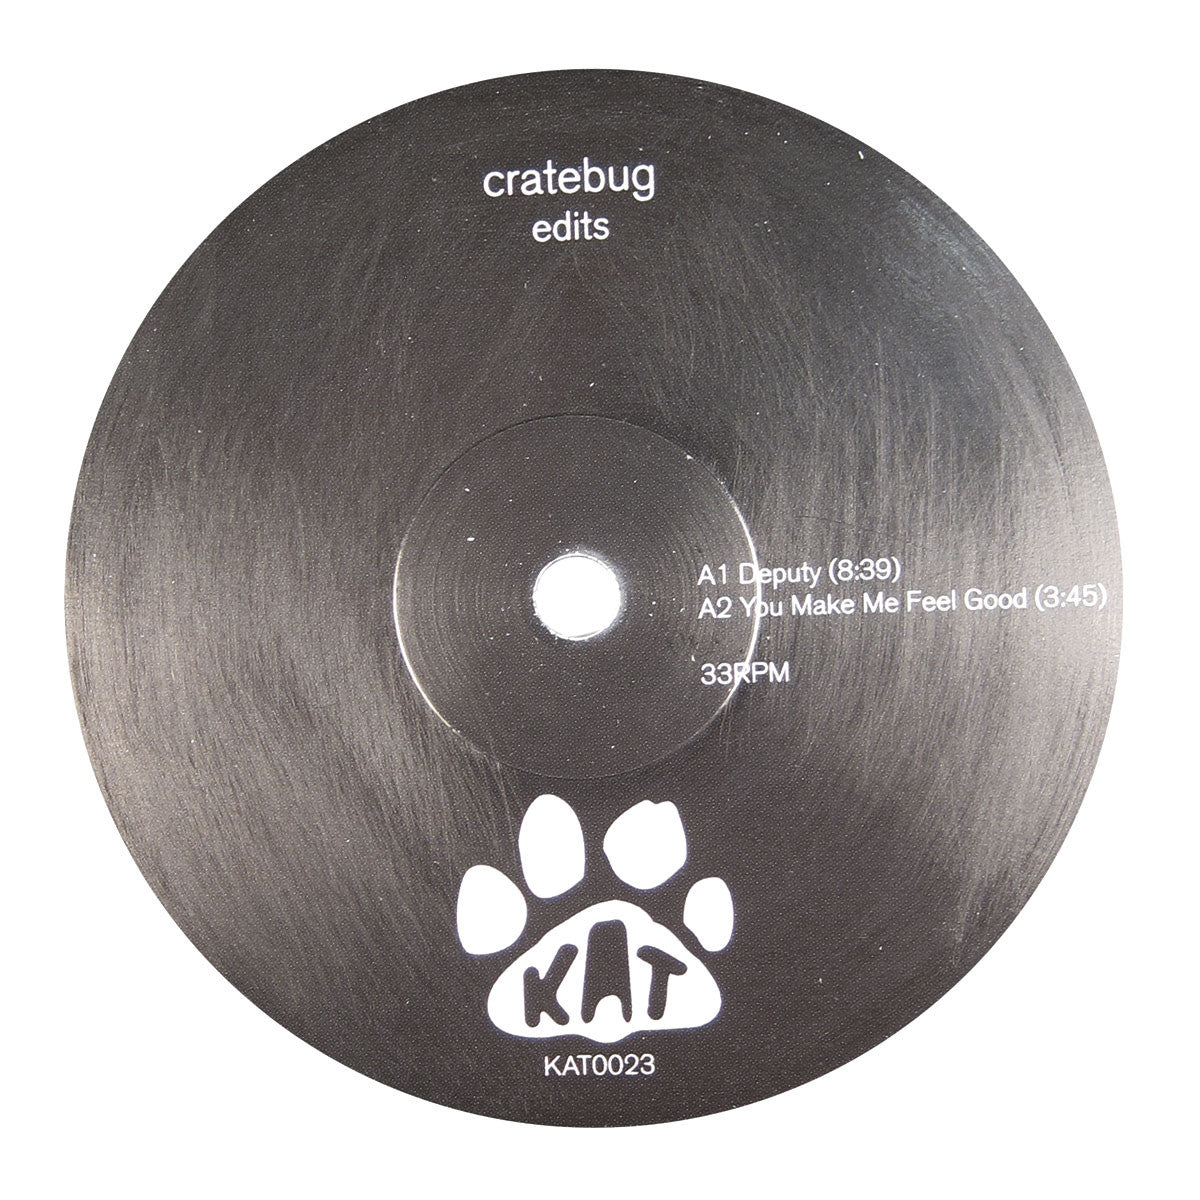 Cratebug: Edits (Martin Circus, Savage Progress) Vinyl 12""